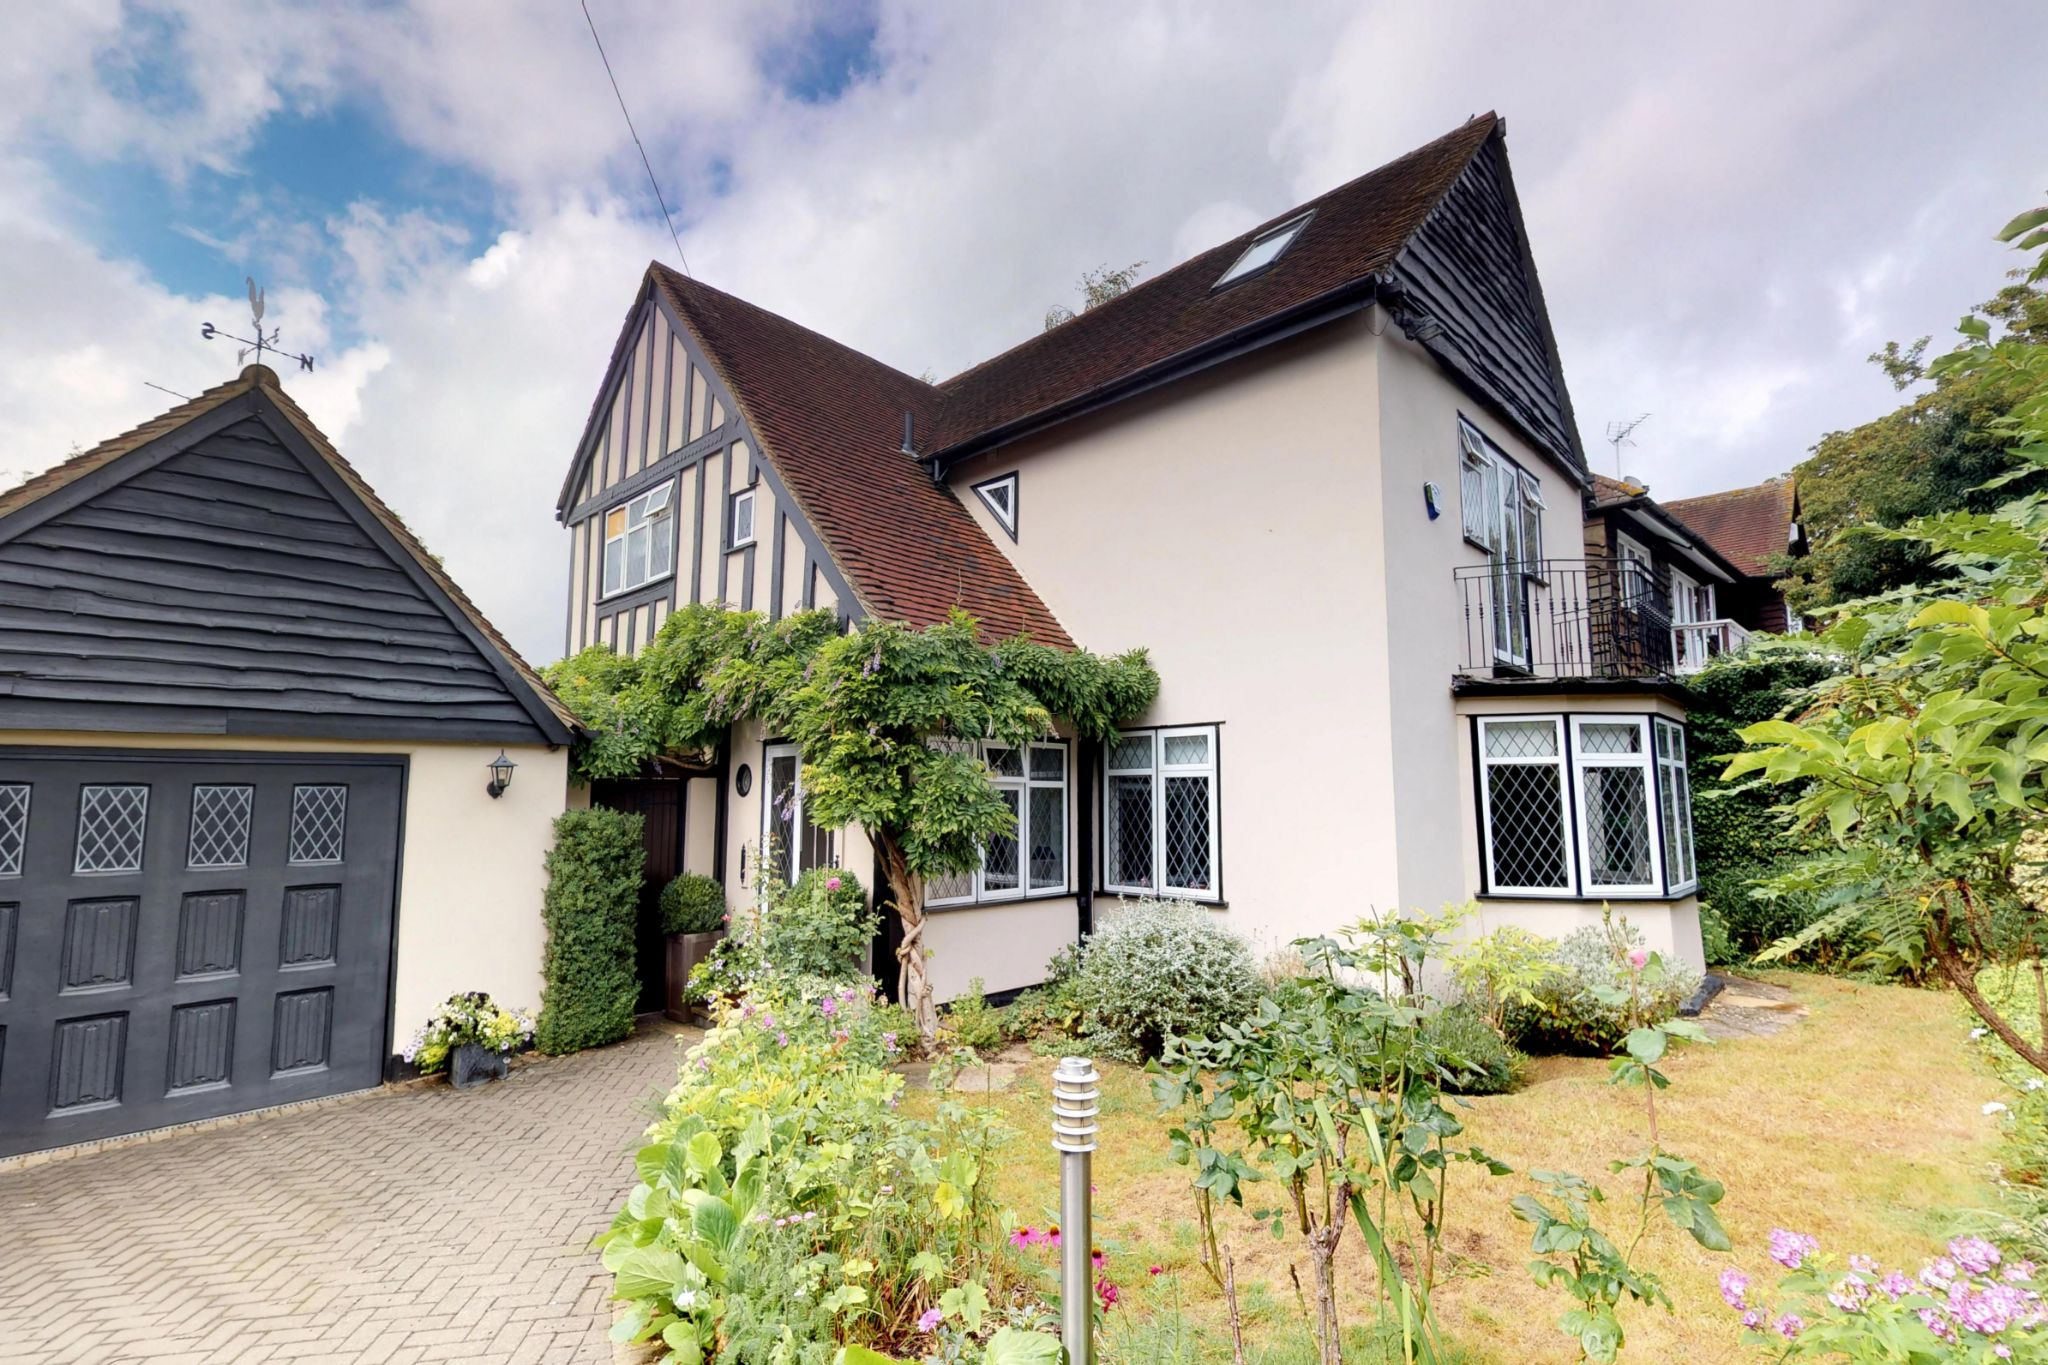 4 bedroom detached house For Sale in Potters Bar - Photograph 1